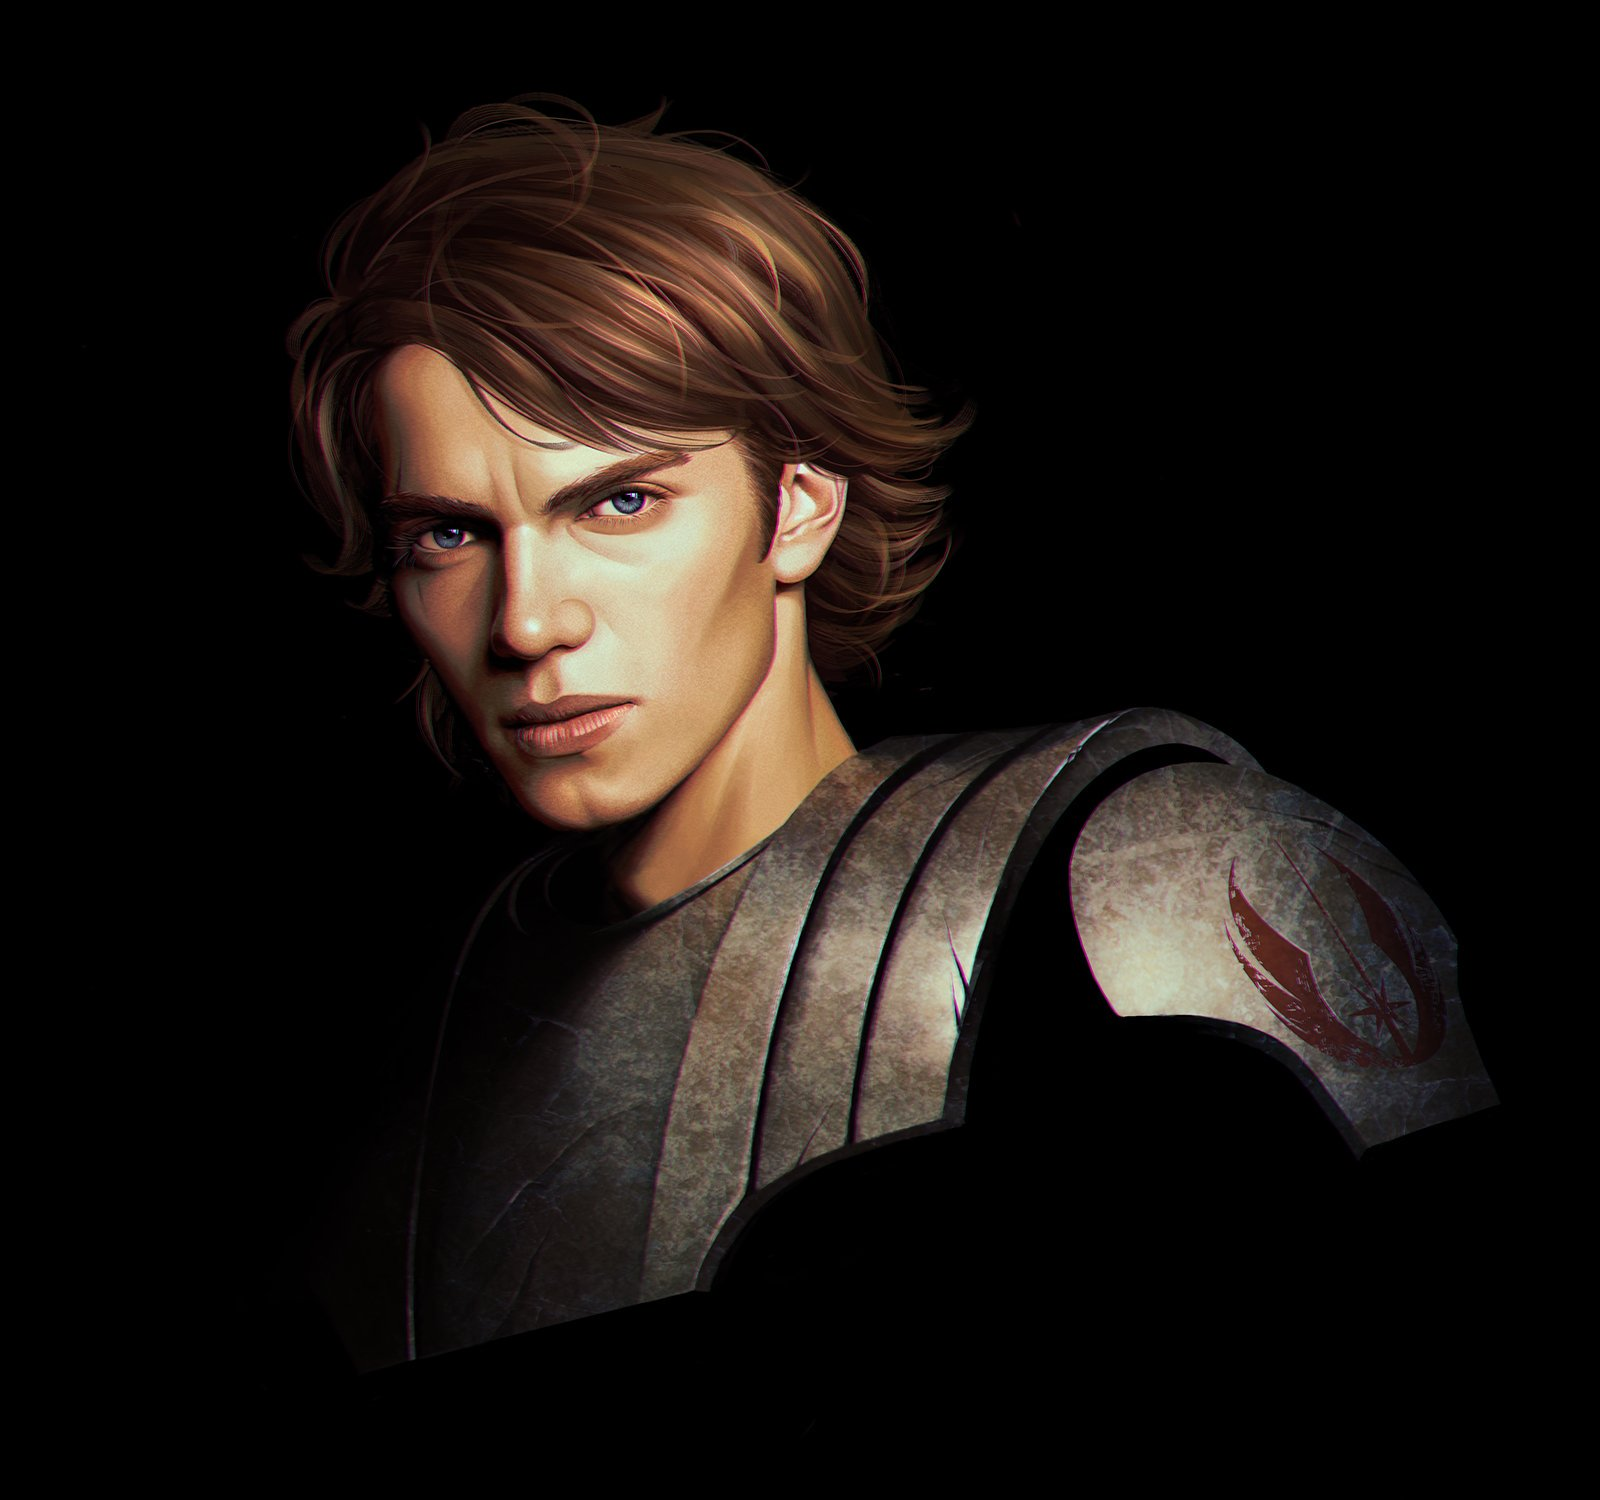 General Skywalker (Source in comments)